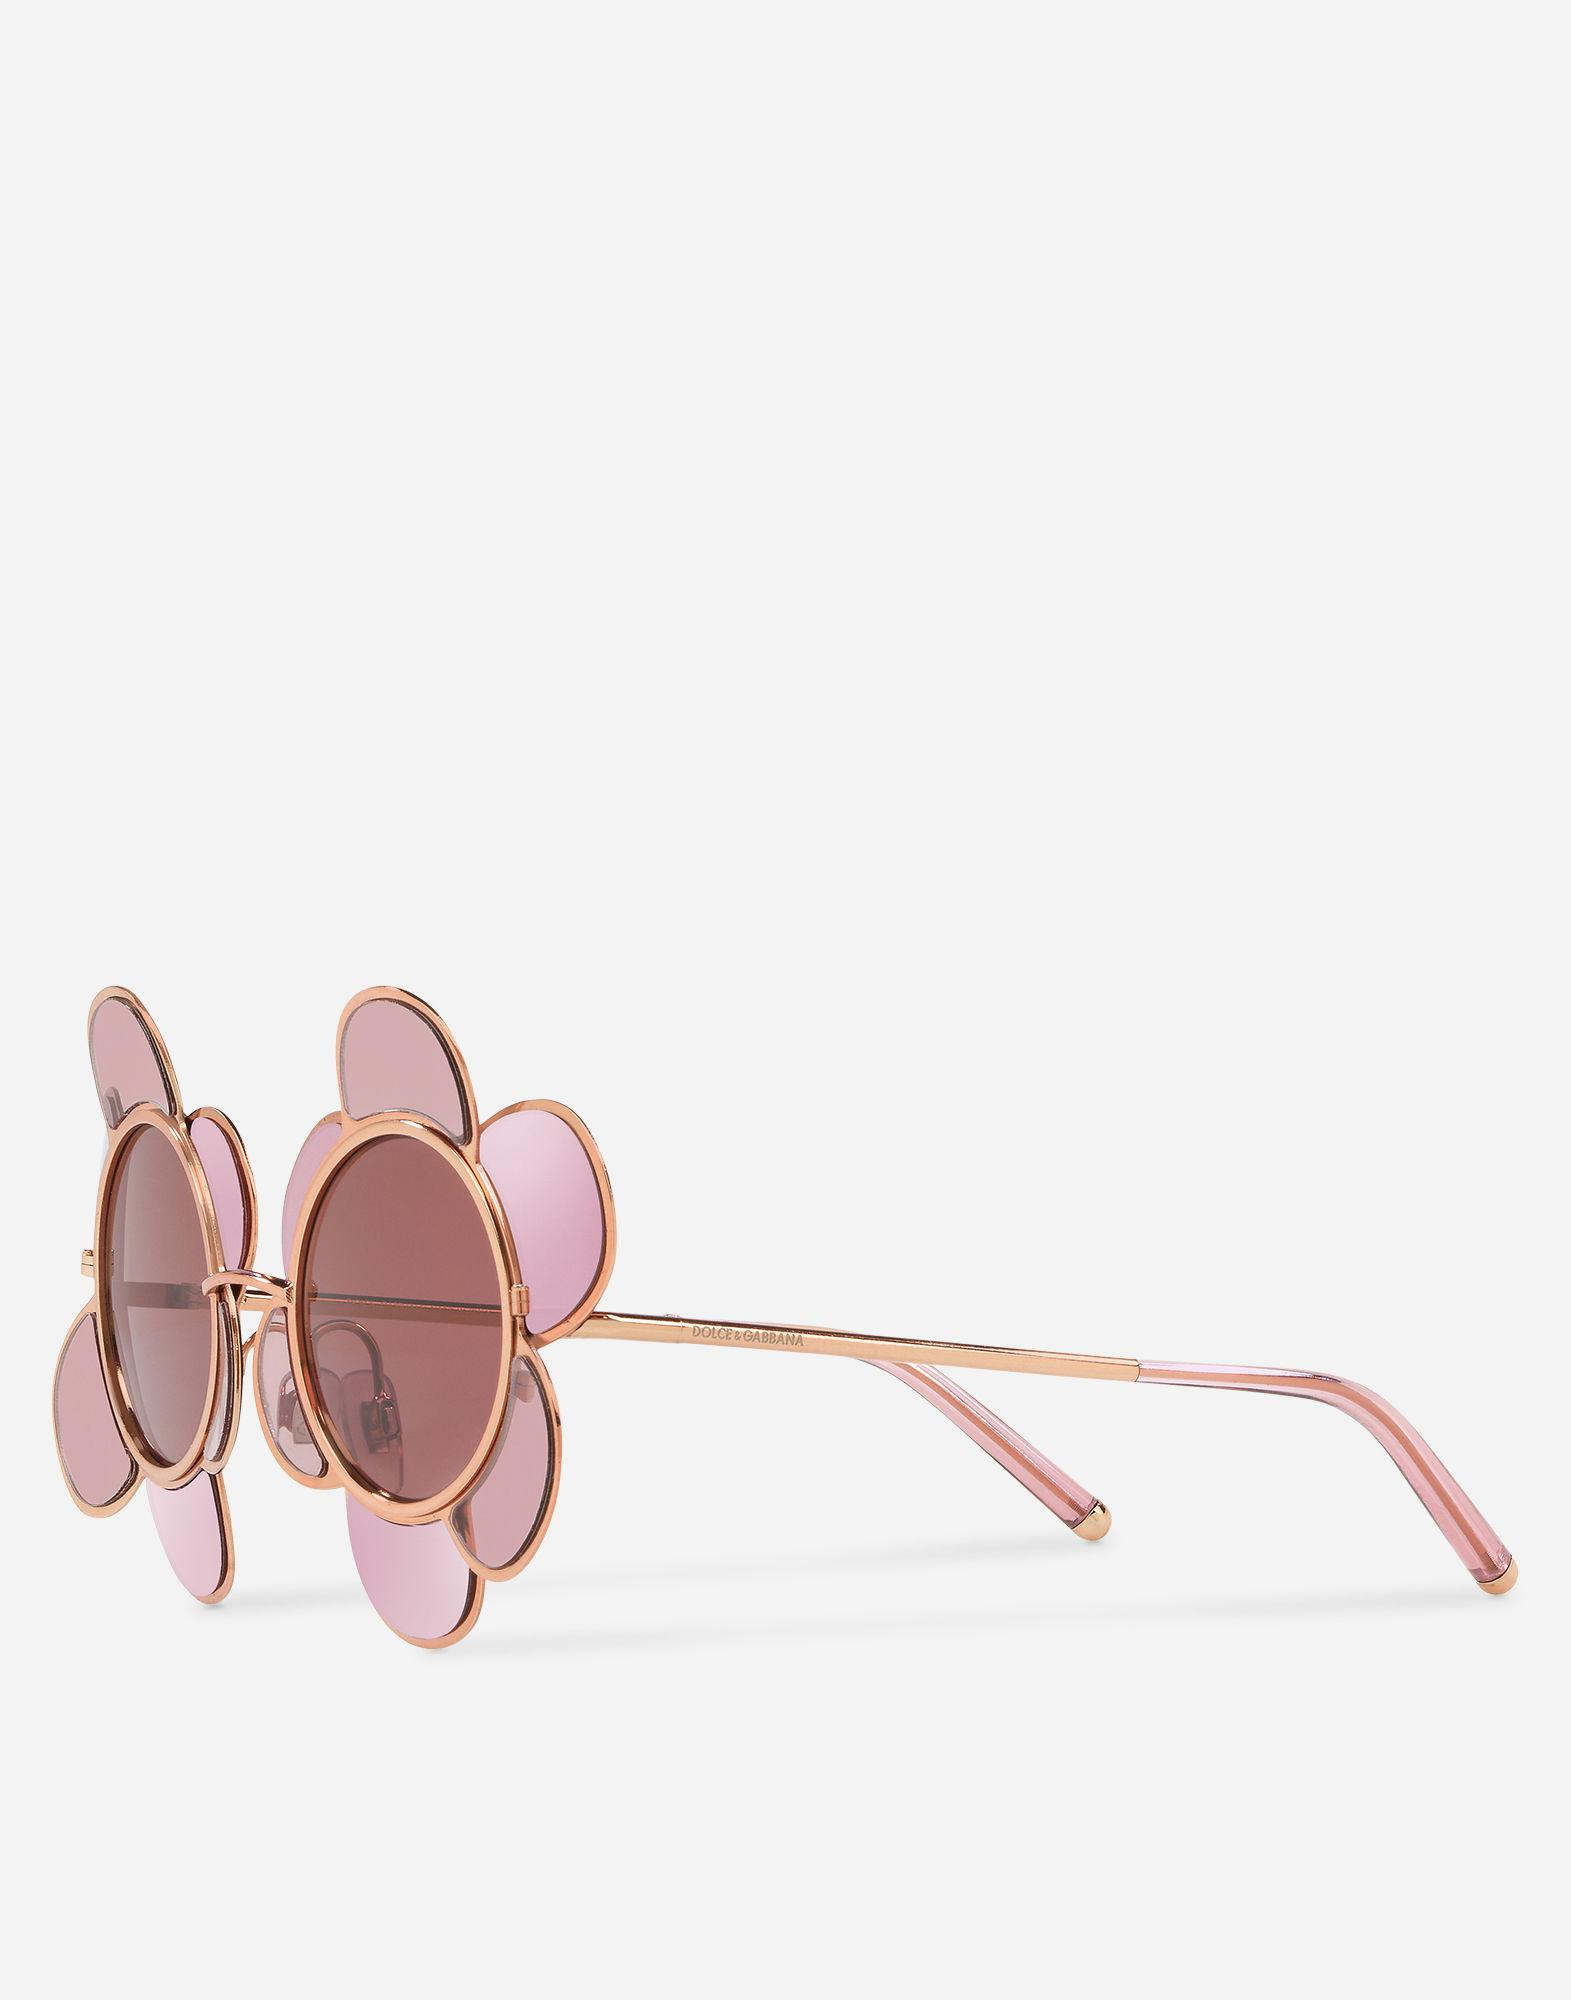 184621b3310 Gabbana Inspired Flower Lyst In amp  Dolce Metal Pink Sunglasses UxqxgEFv